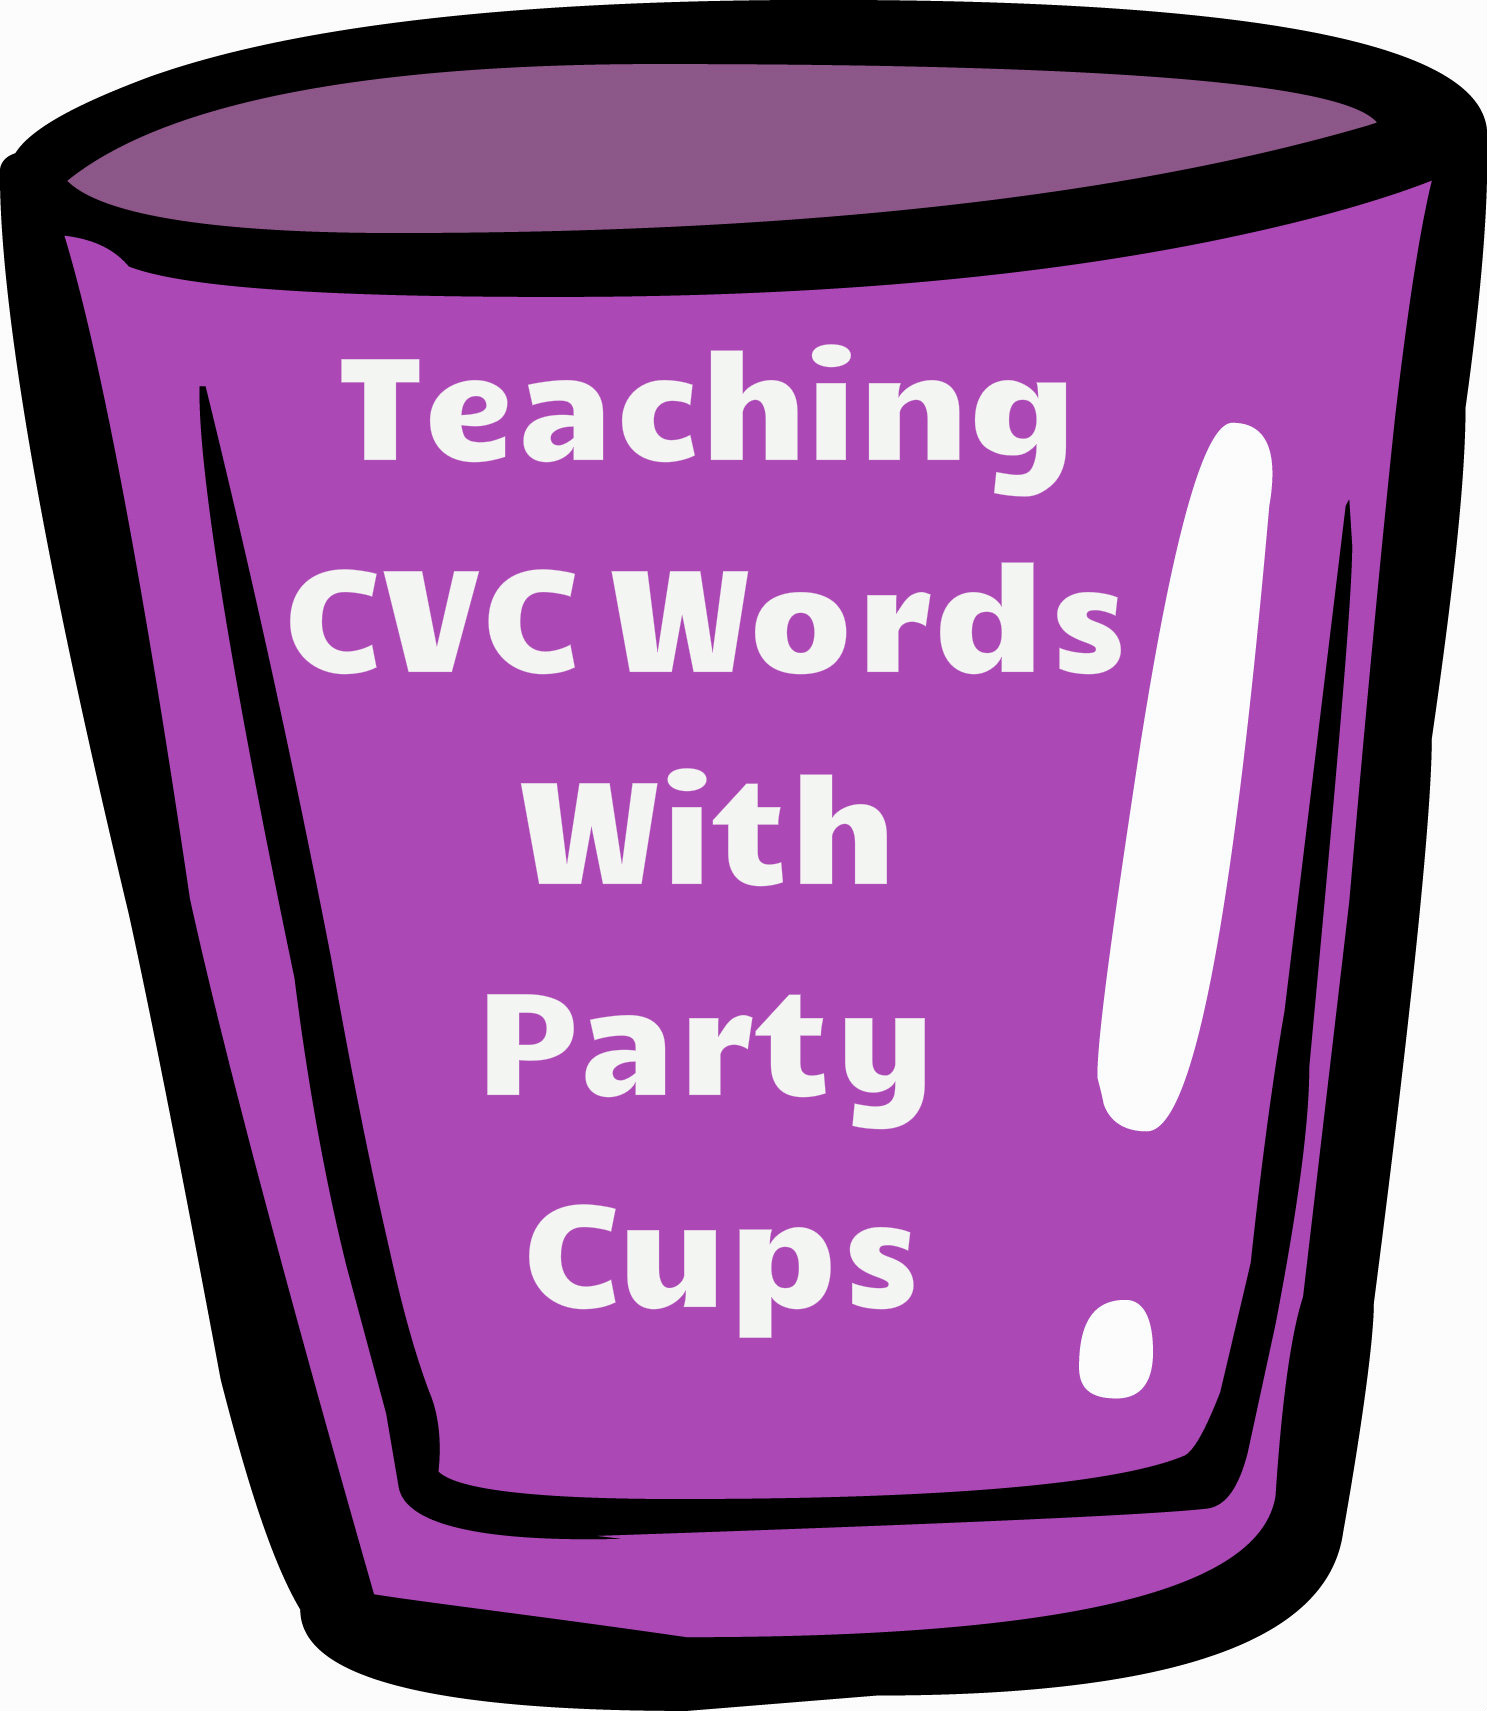 Teaching CVC Words With Party Cups